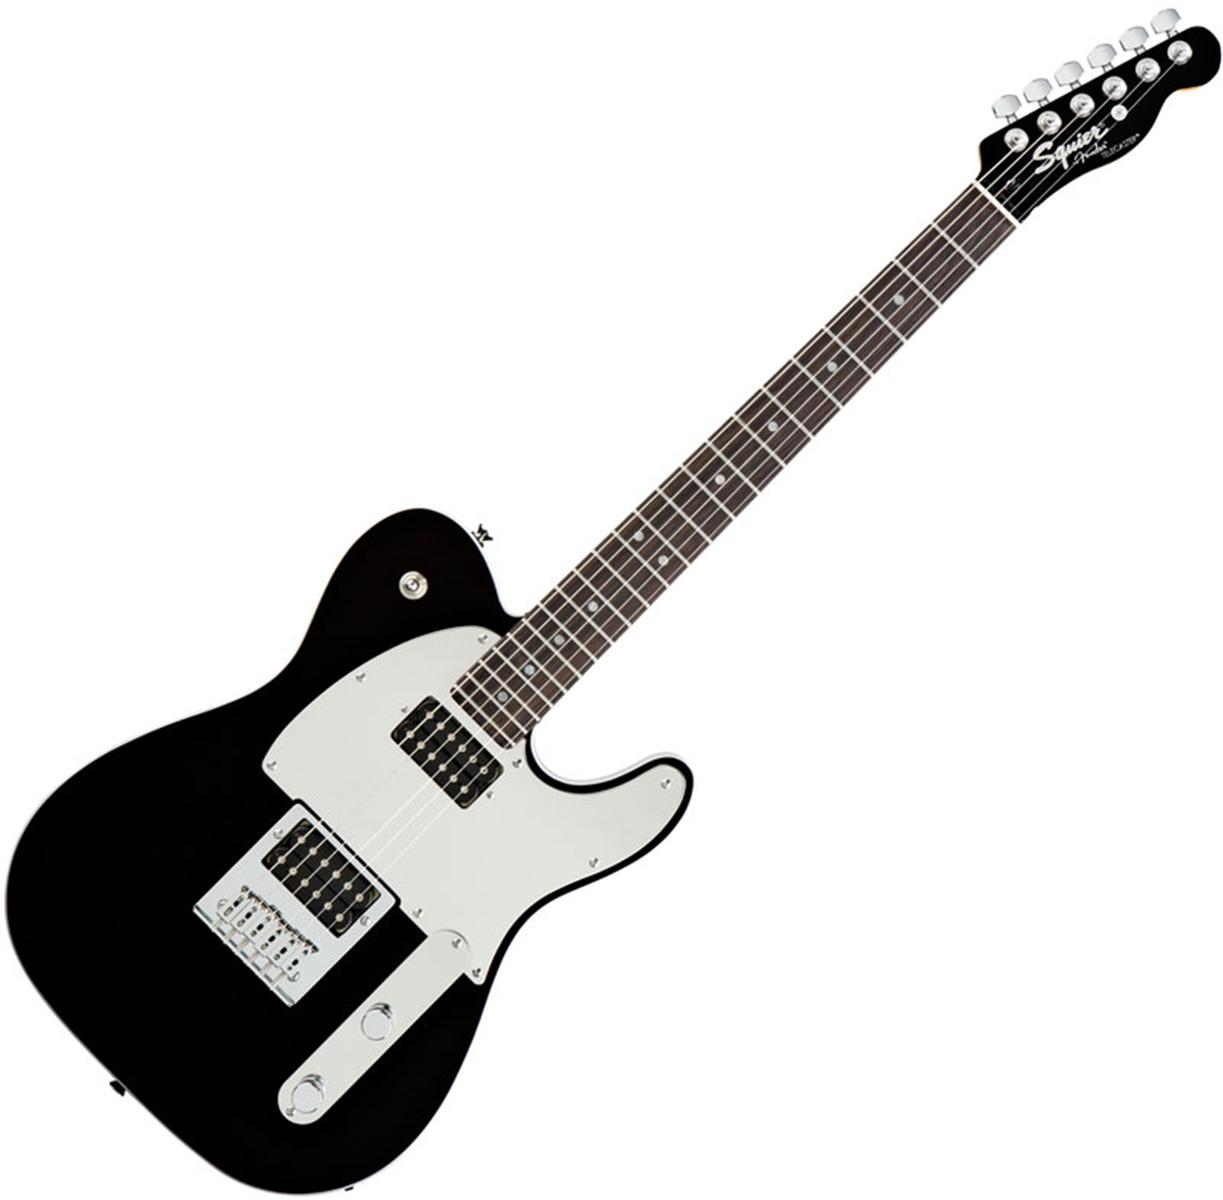 hight resolution of electric guitar clipart black and white